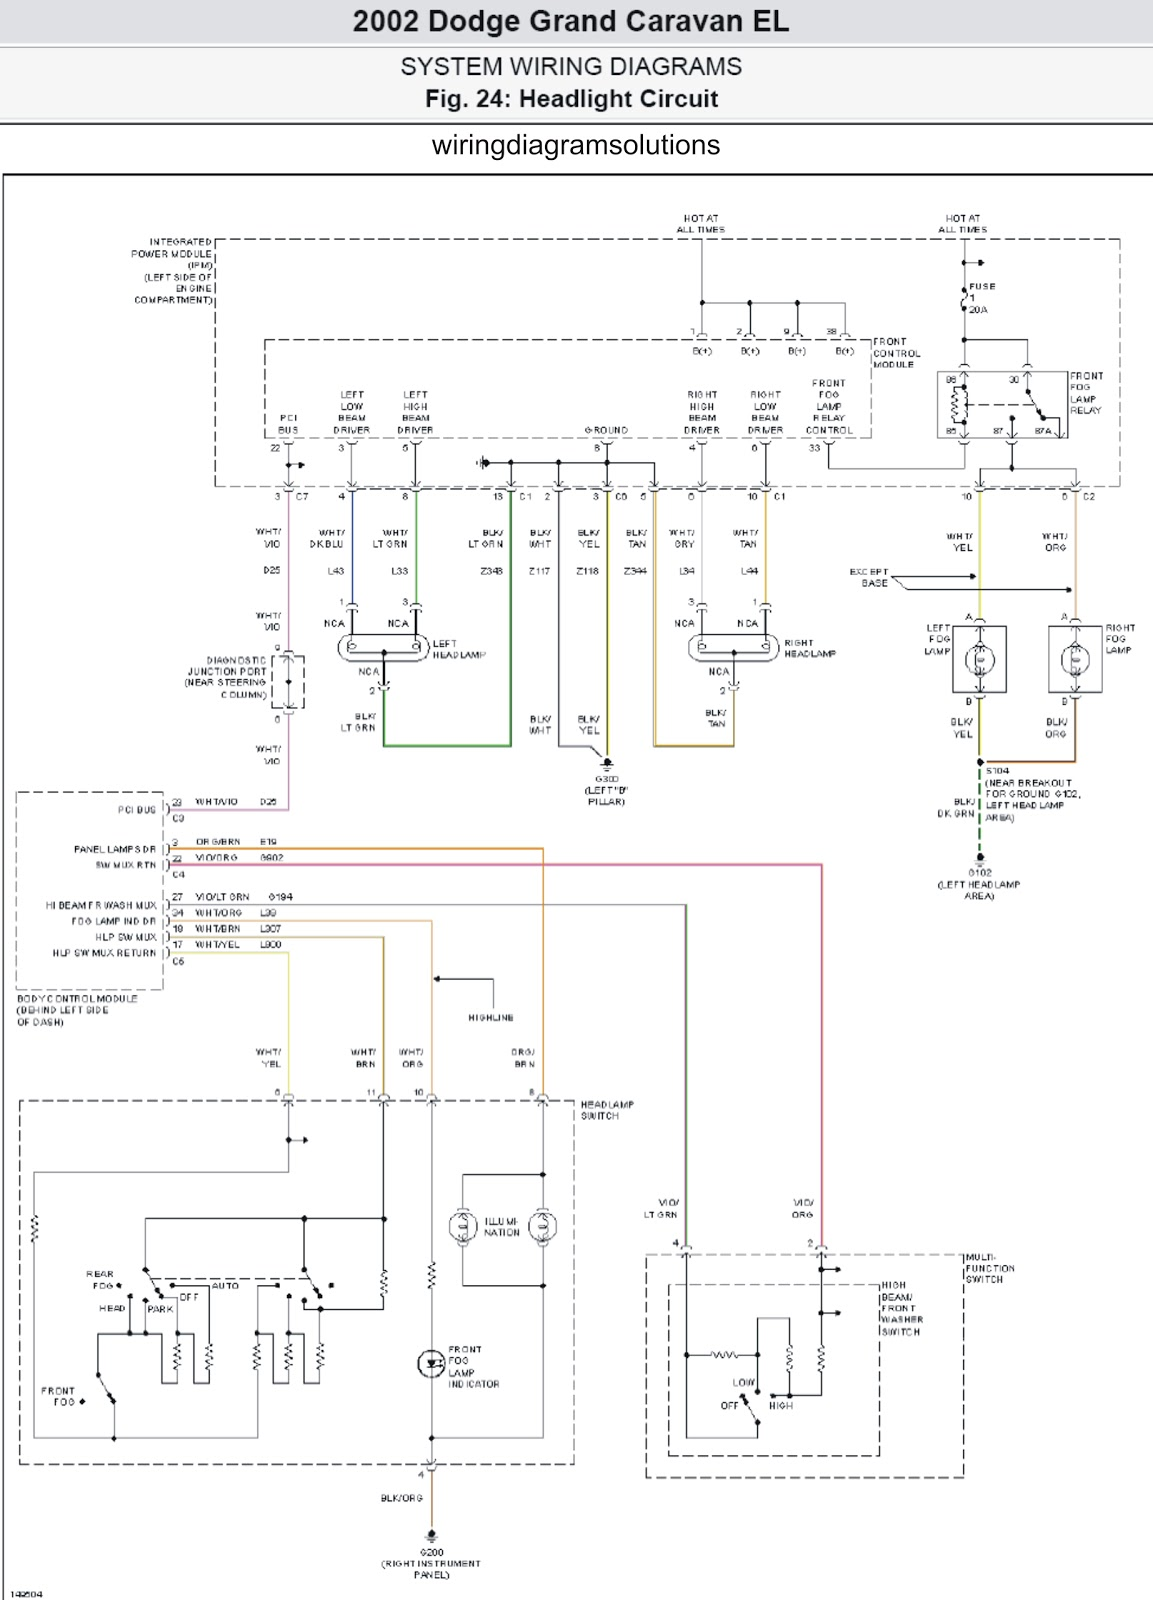 dodge caravan ac wiring diagram free picture - wiring diagram session -  session.lionsclubviterbo.it  lionsclubviterbo.it